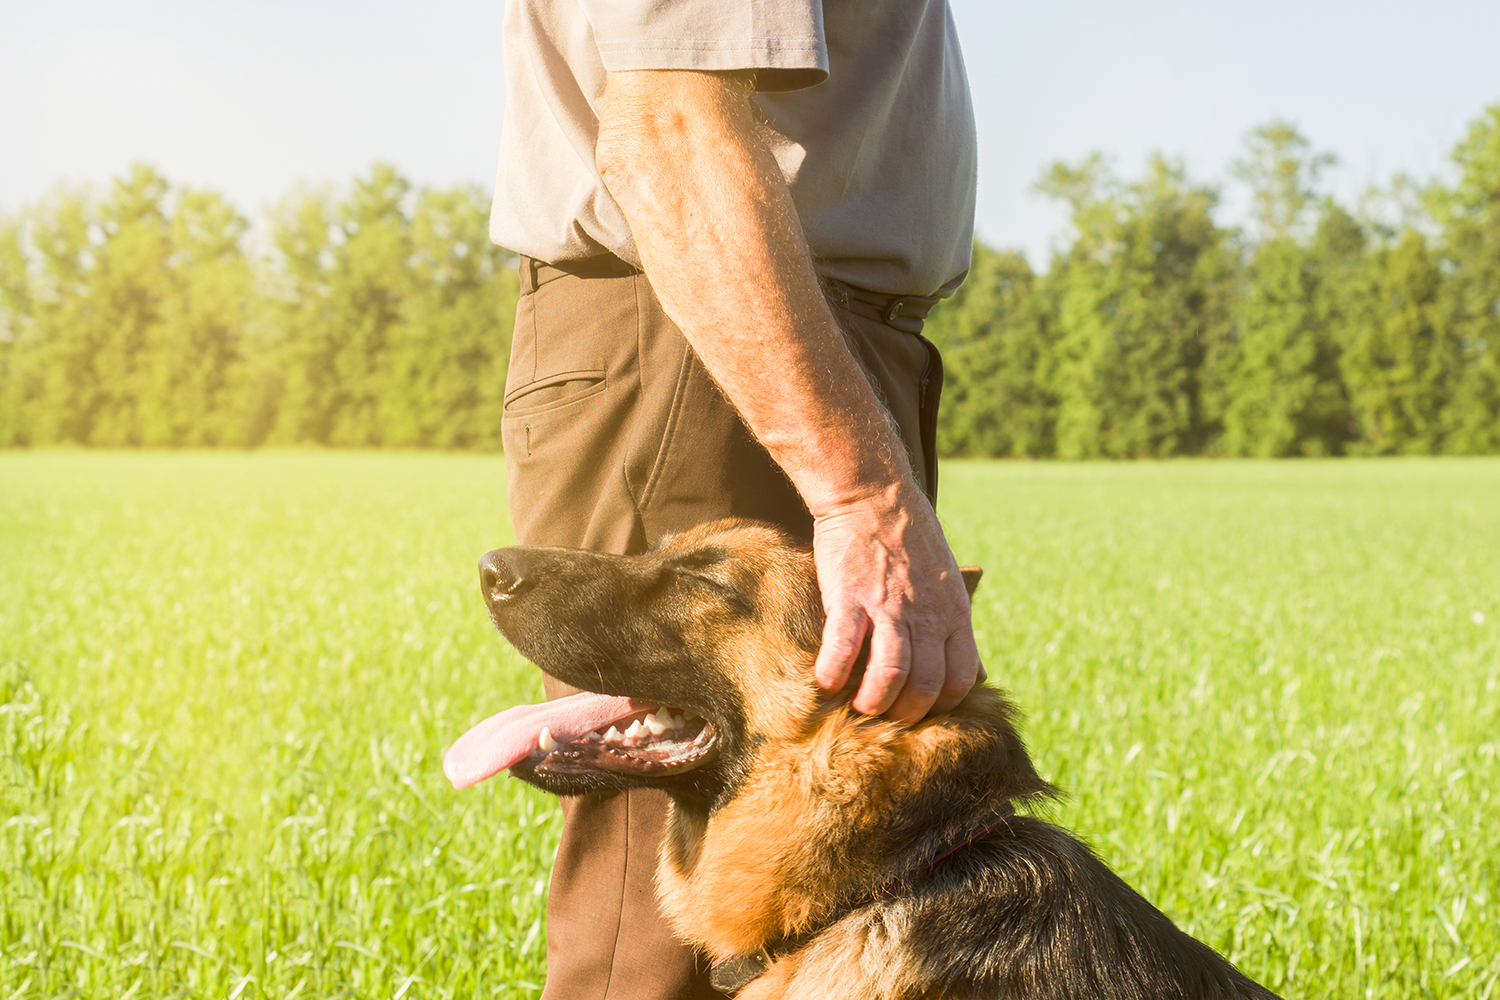 What Does Dog Handling Involve?